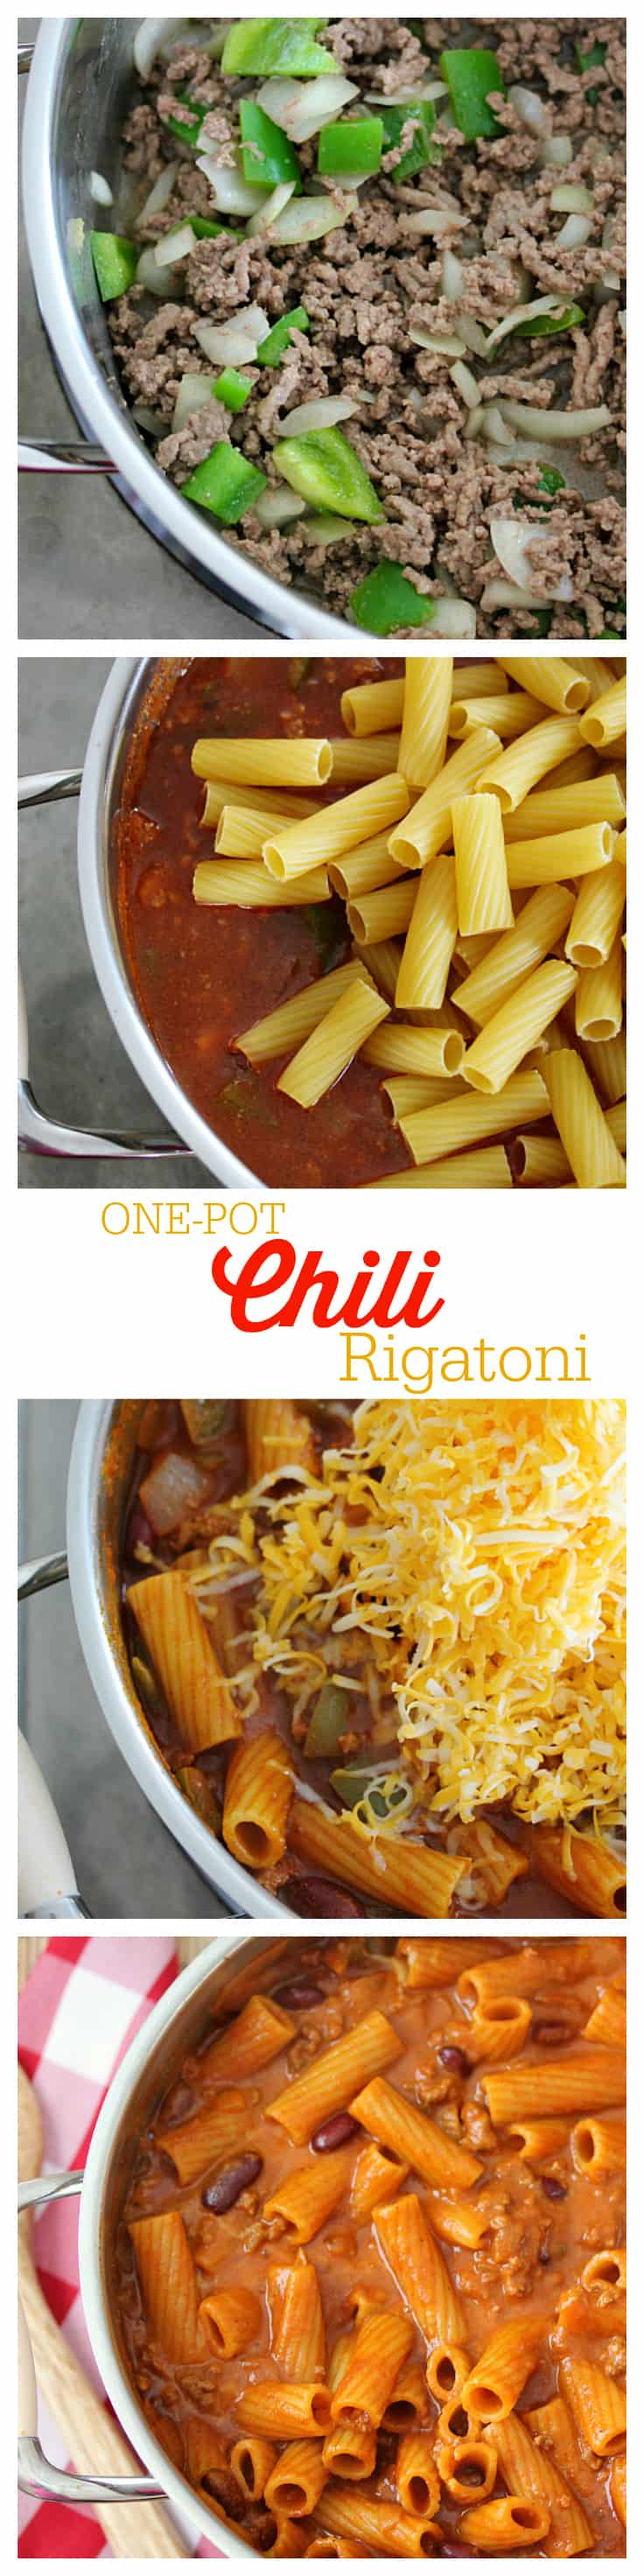 One-Pot Chili Rigatoni - Get dinner on the table in less than 30 minutes with this hearty recipe your family will love!